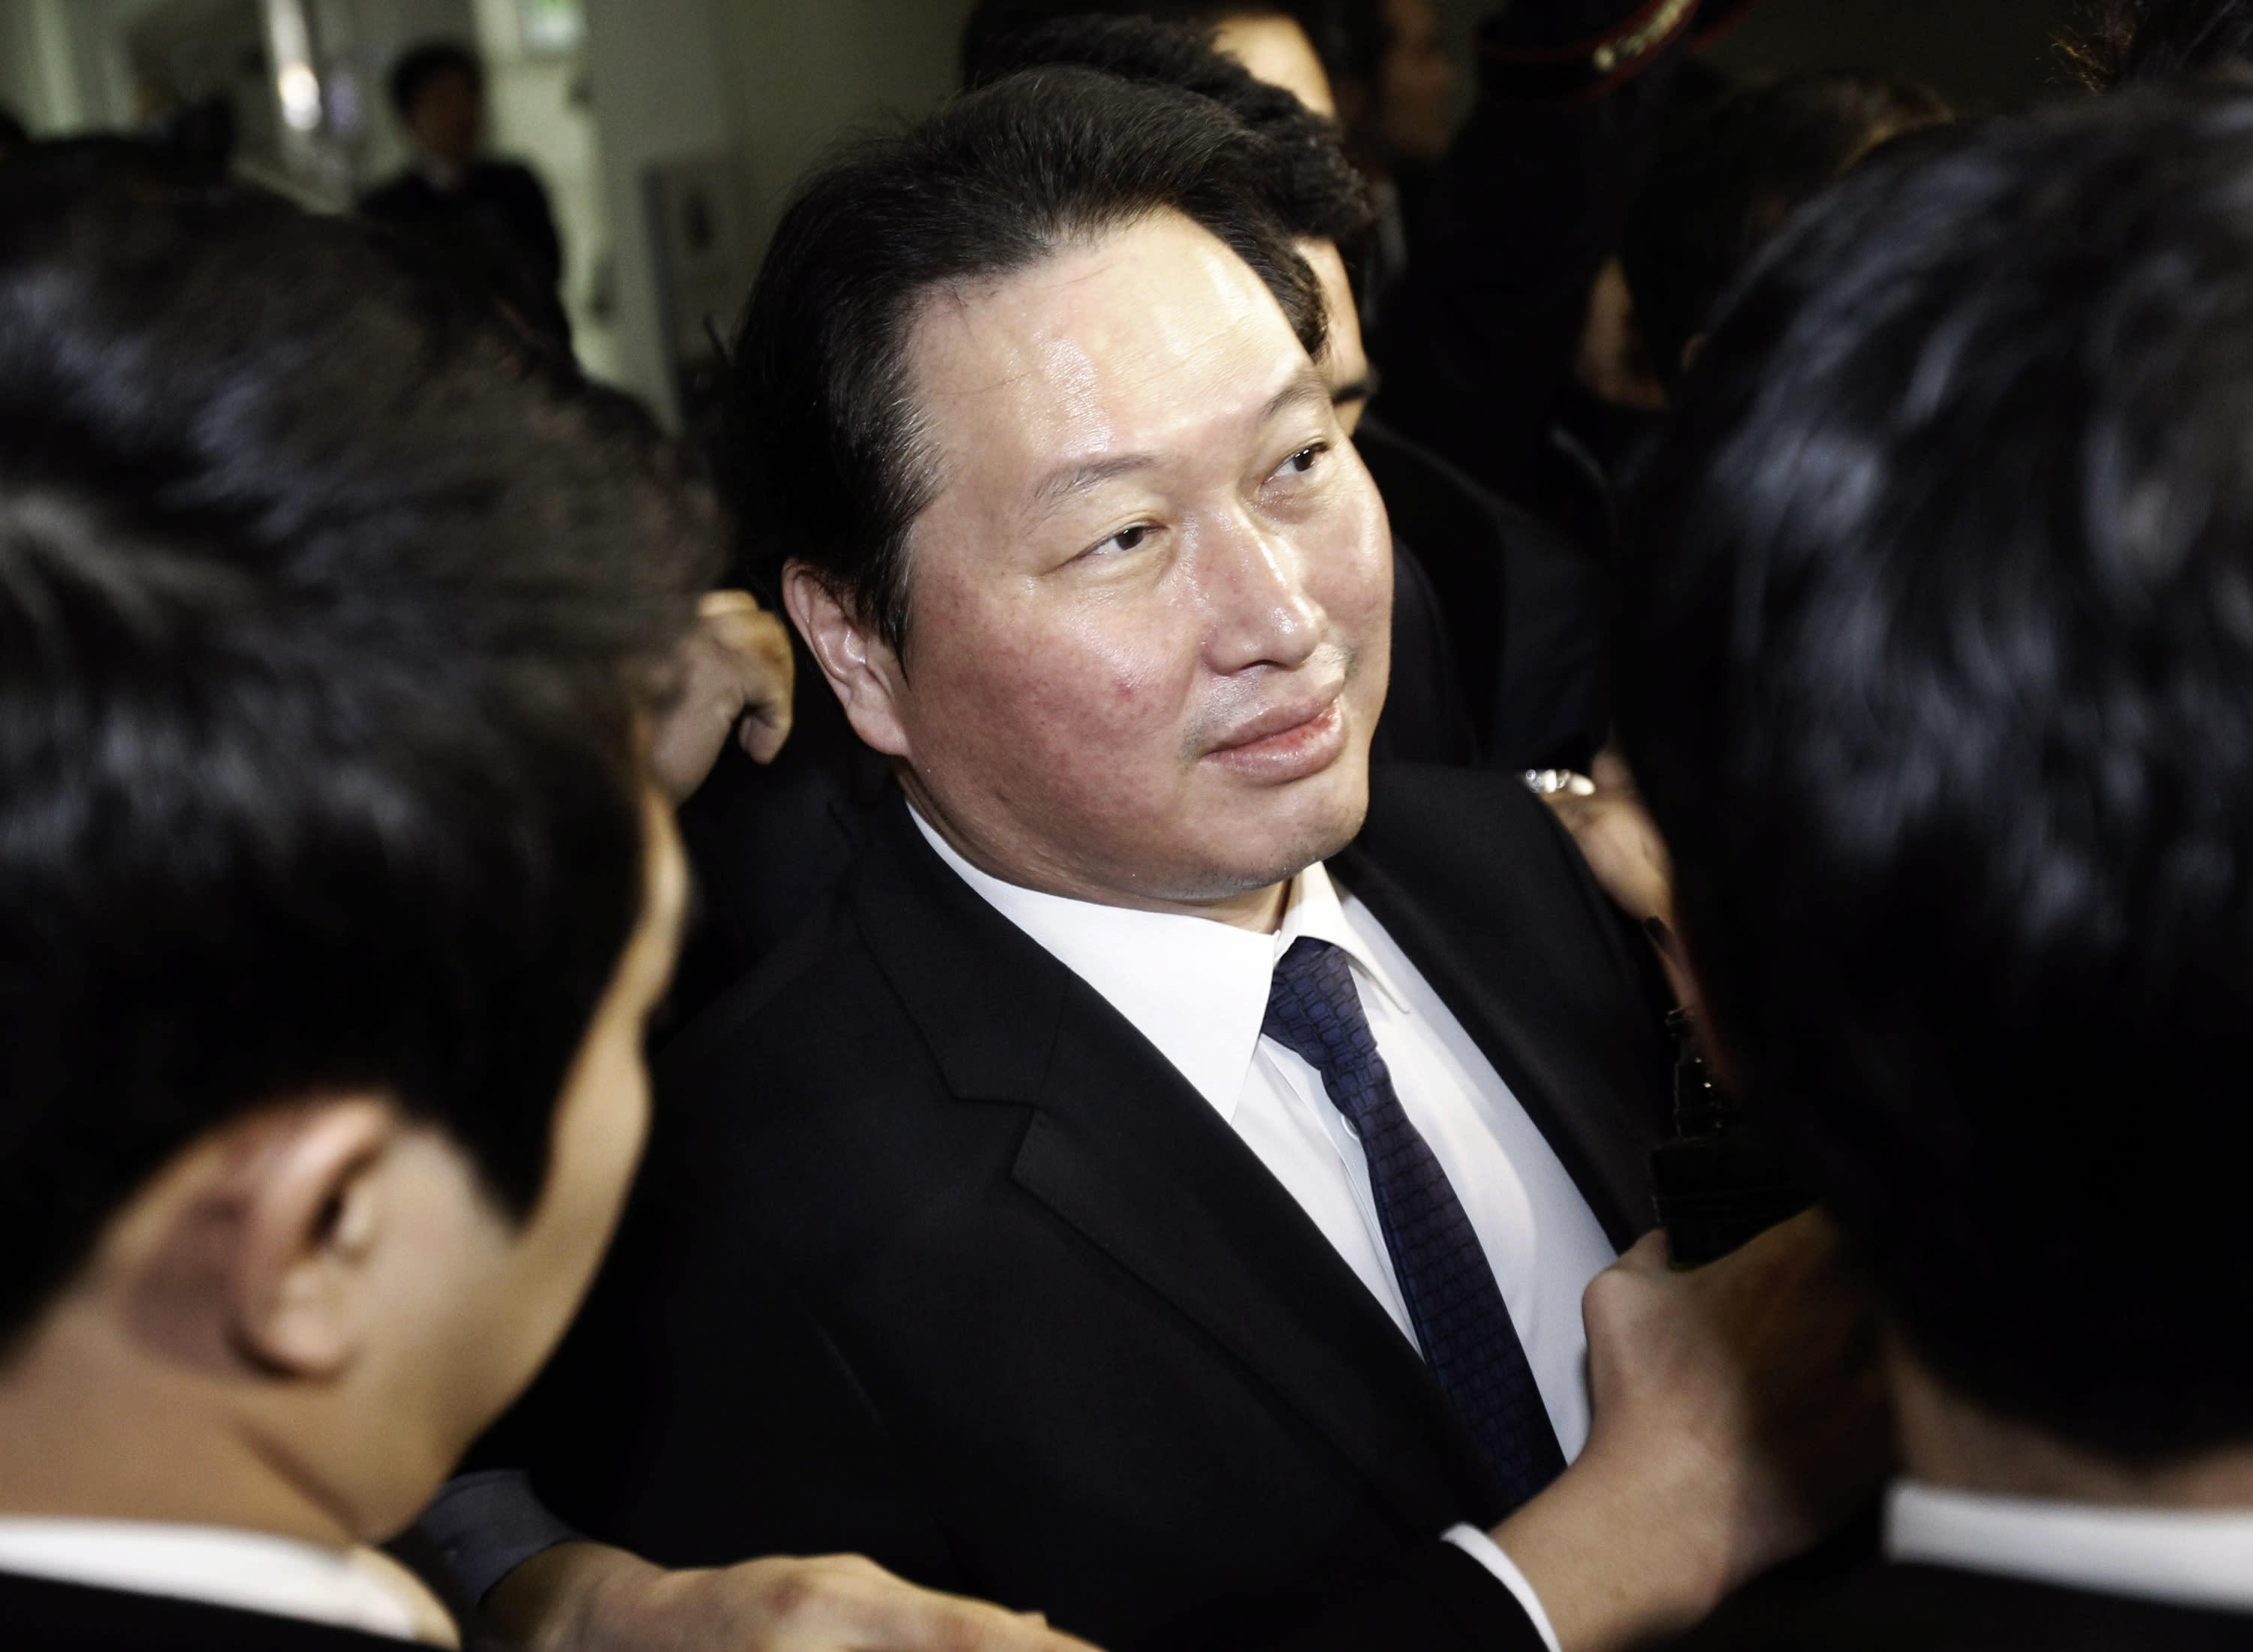 SKorea chaebol chief sentenced to 4 years prison